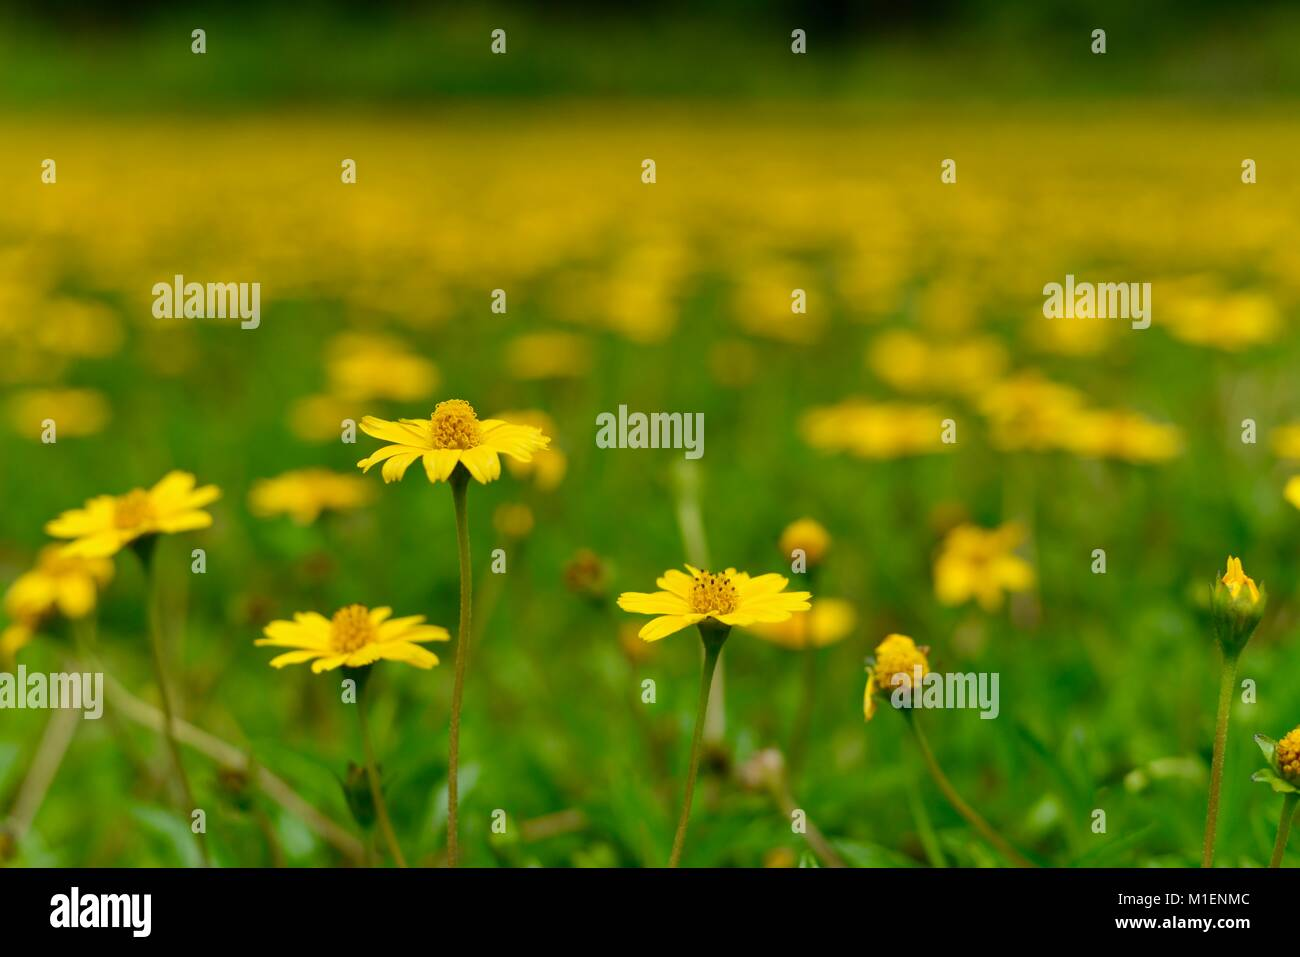 Field Of Yellow Flowers Singapore Daisy Sphagneticola Trilobata